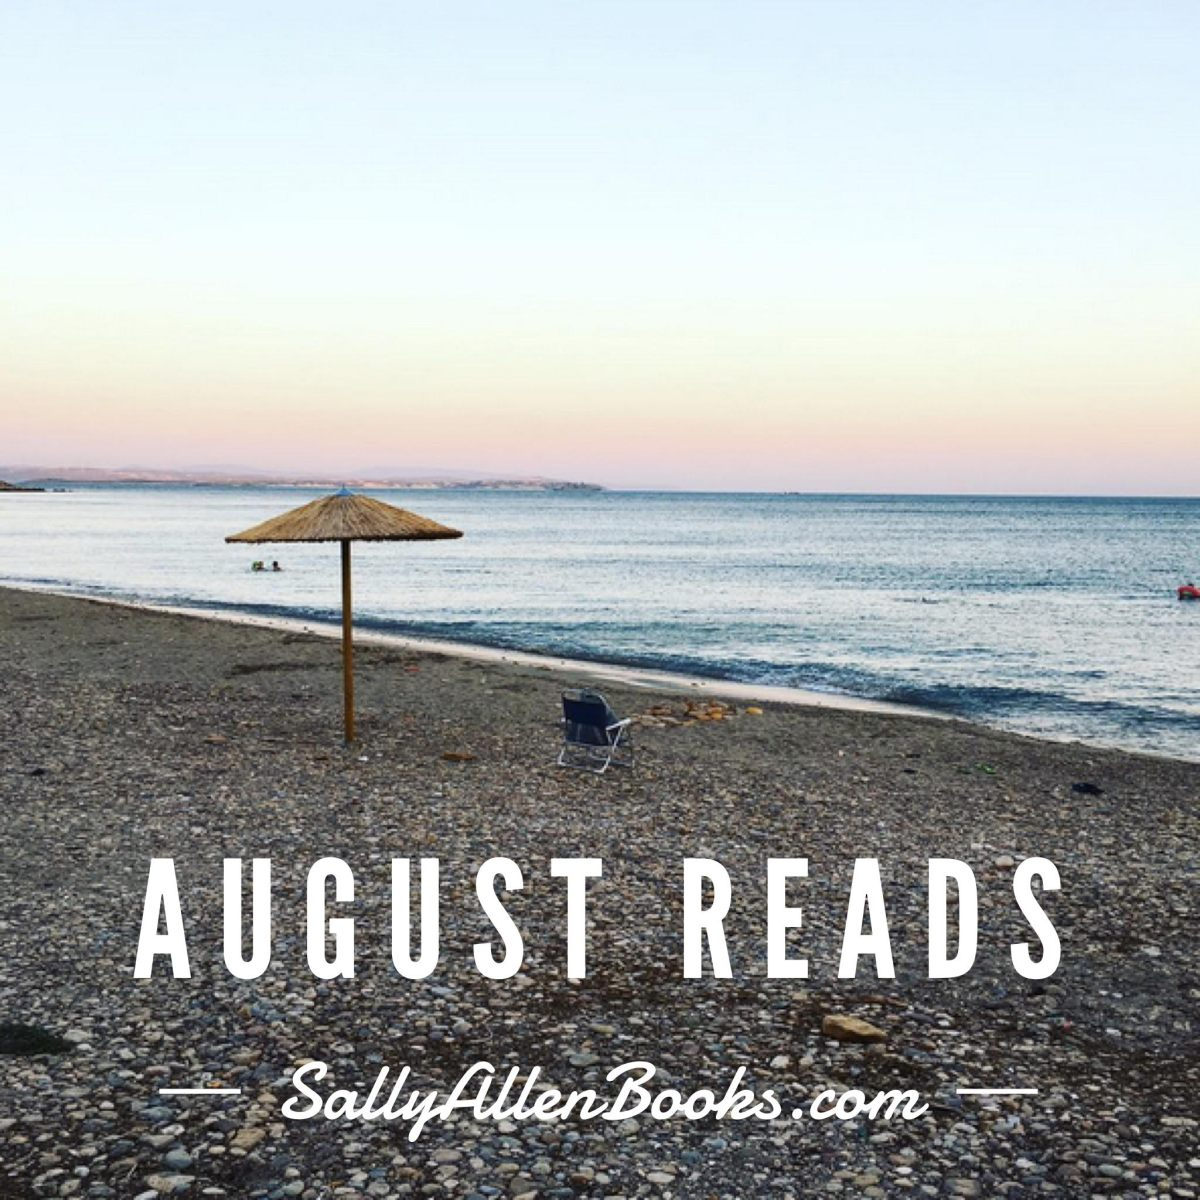 Reading wrap-up: August reads